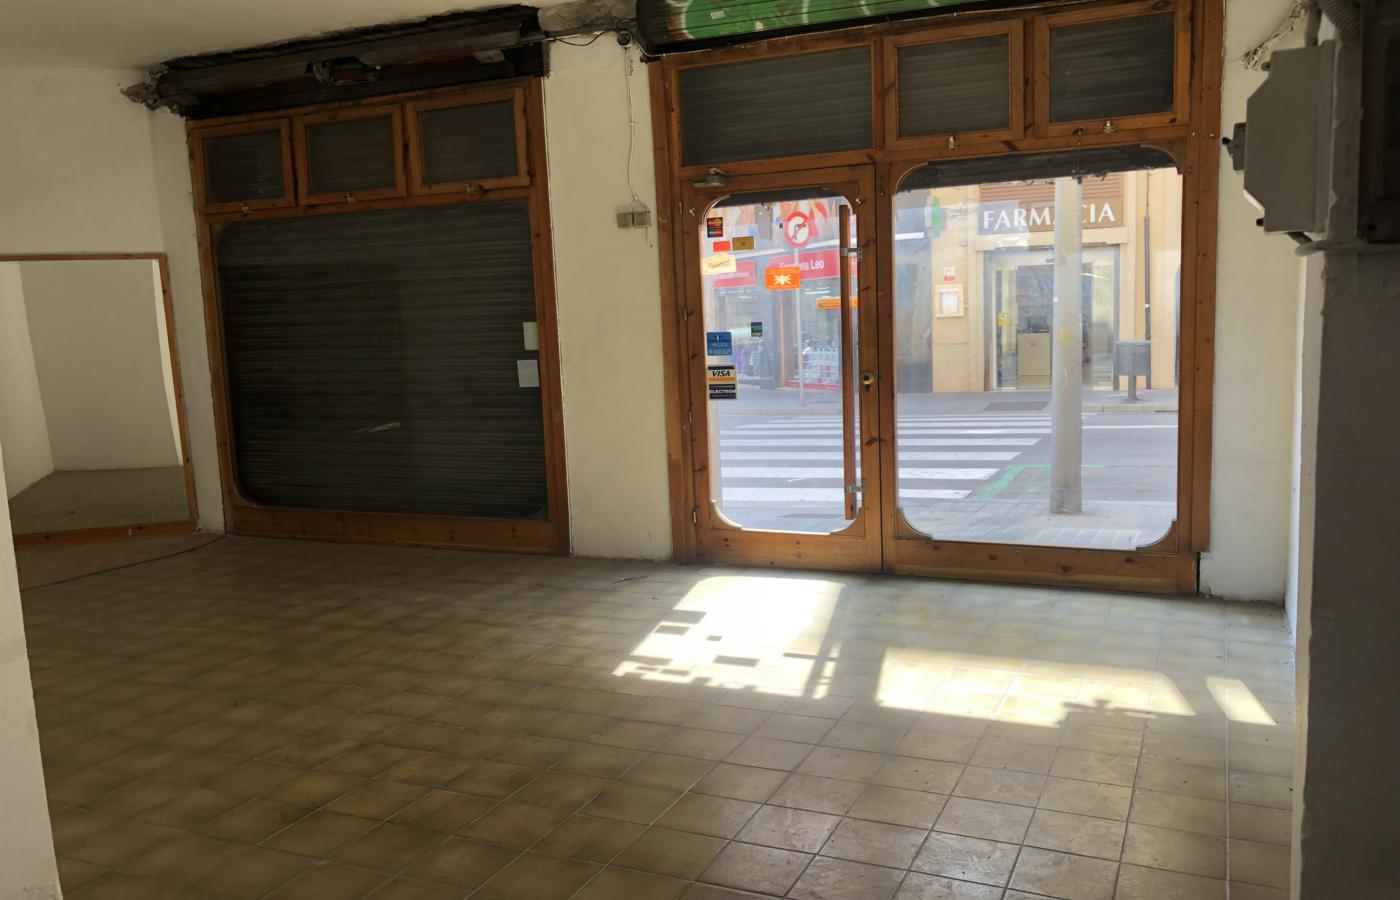 Commercial Property for sale in Sants in Barcelona.